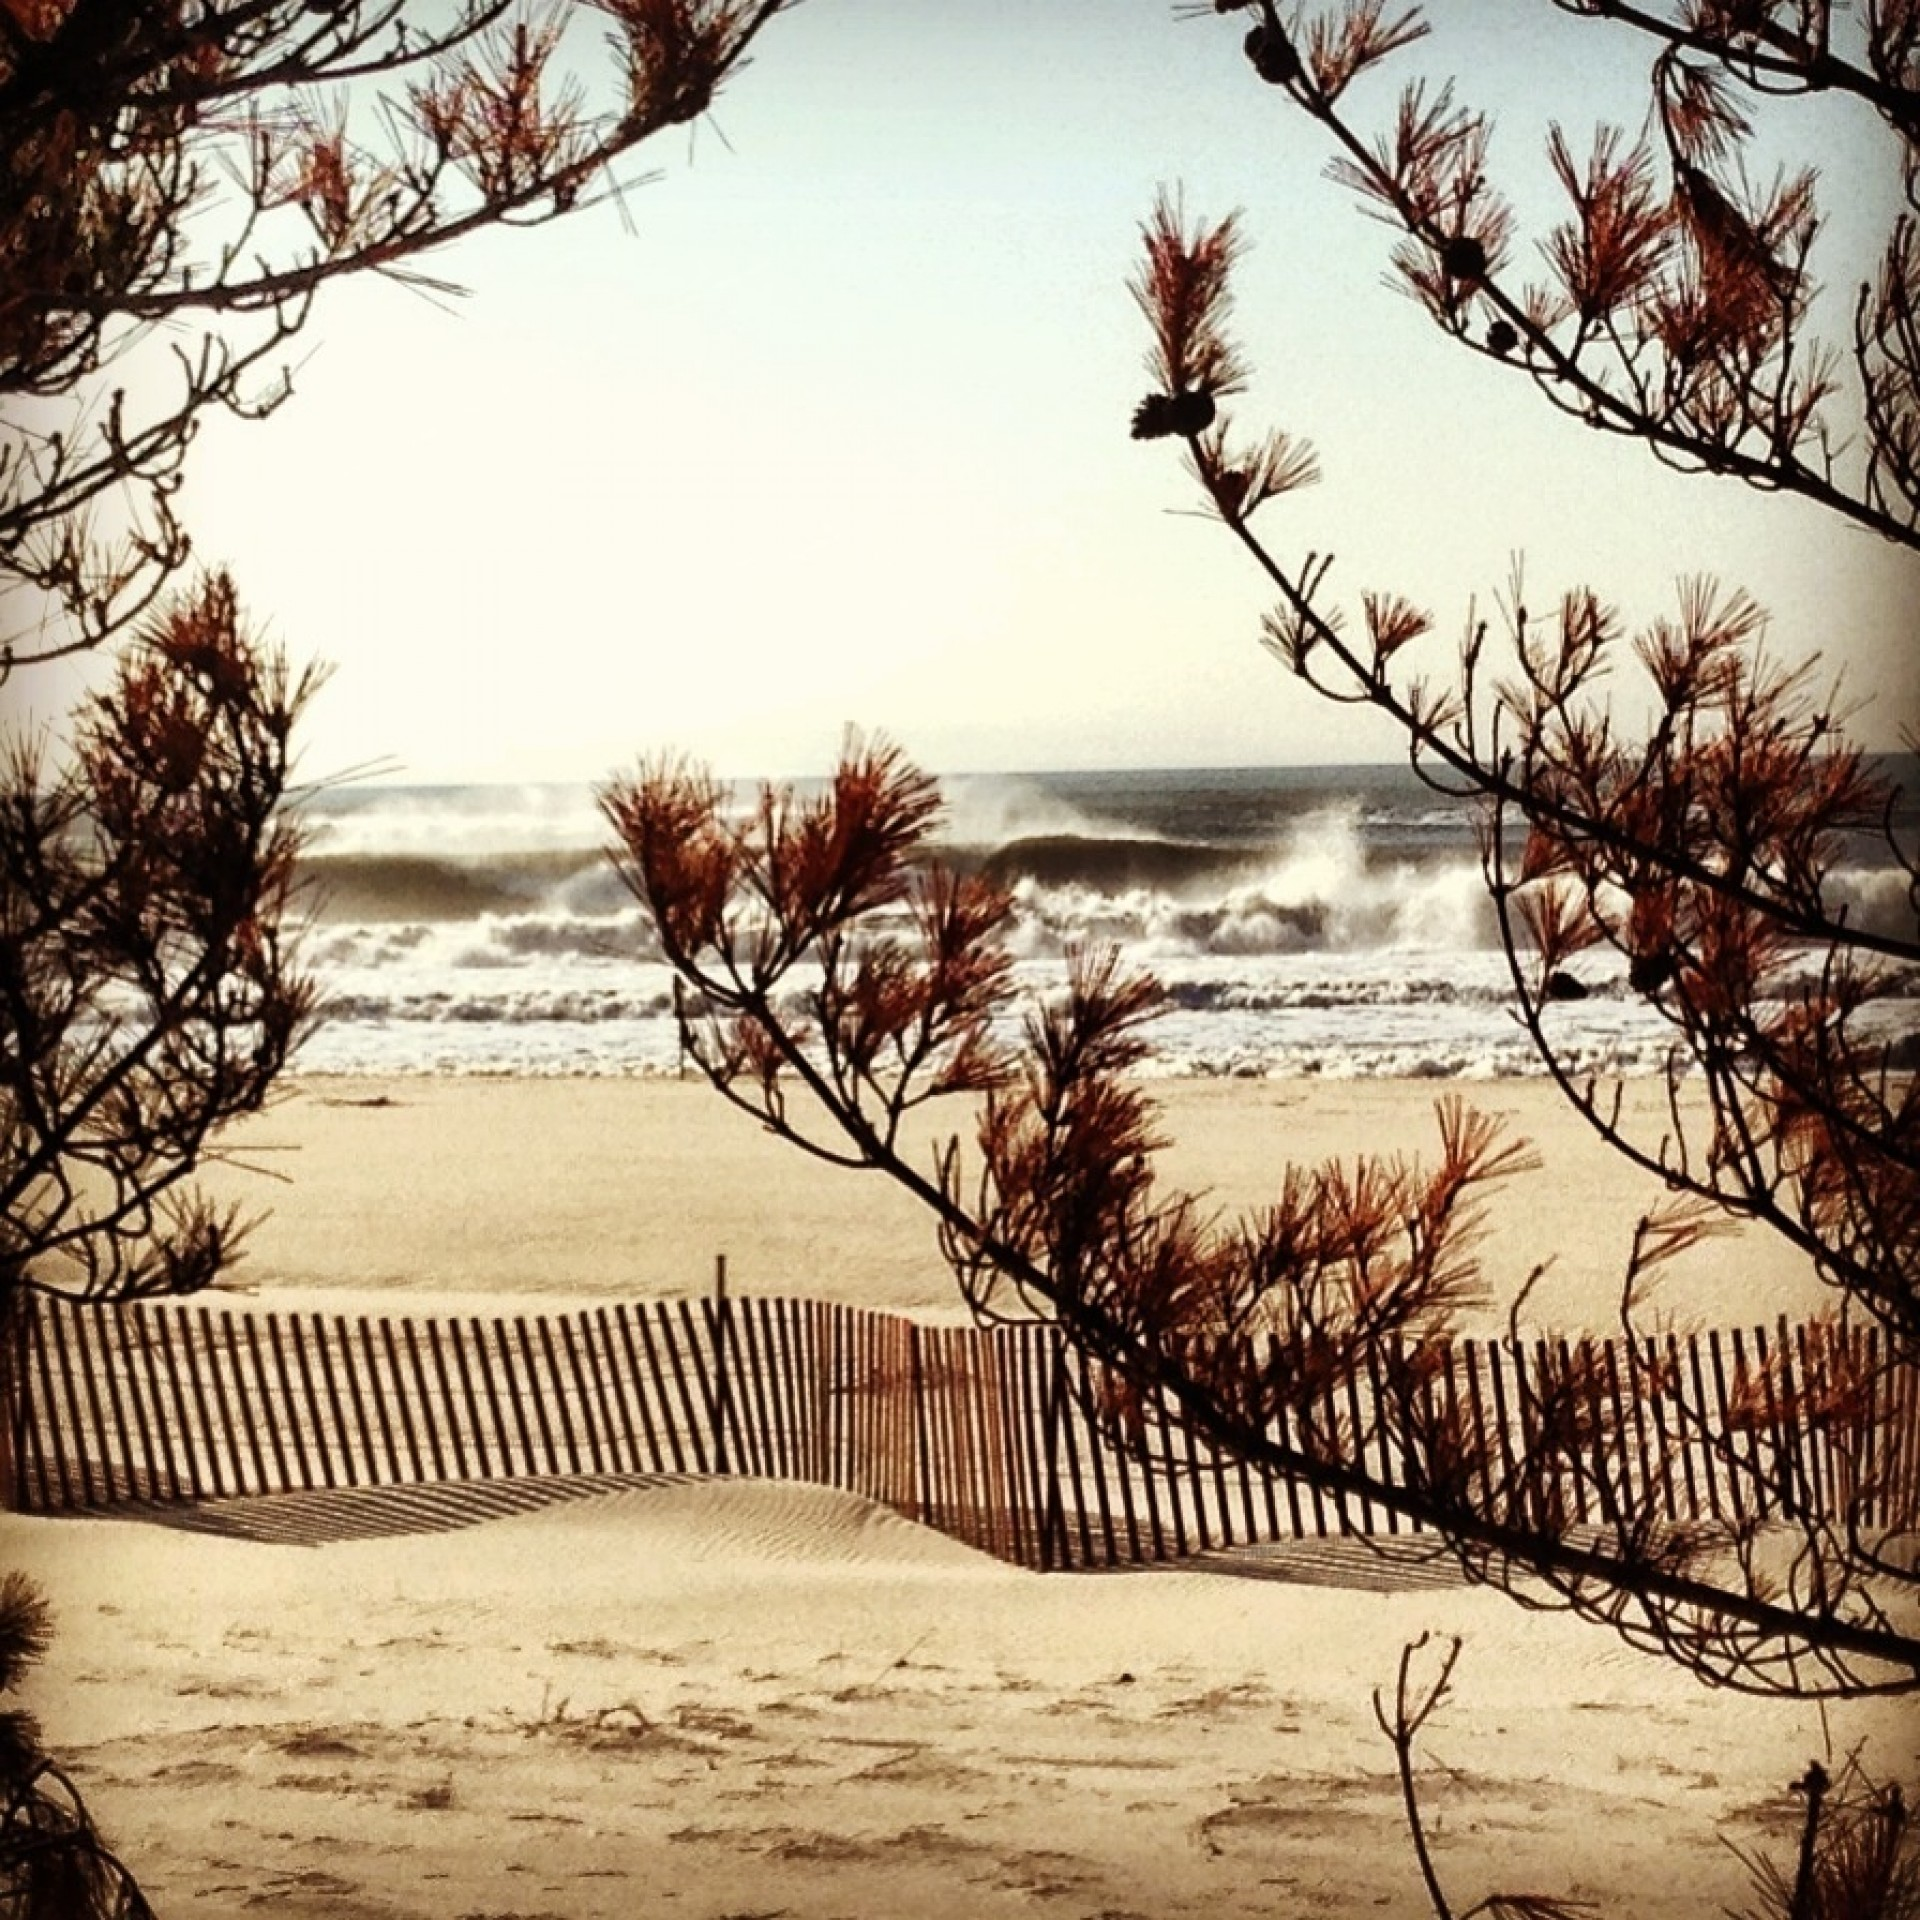 Johnny Huber's photo of Fire Island